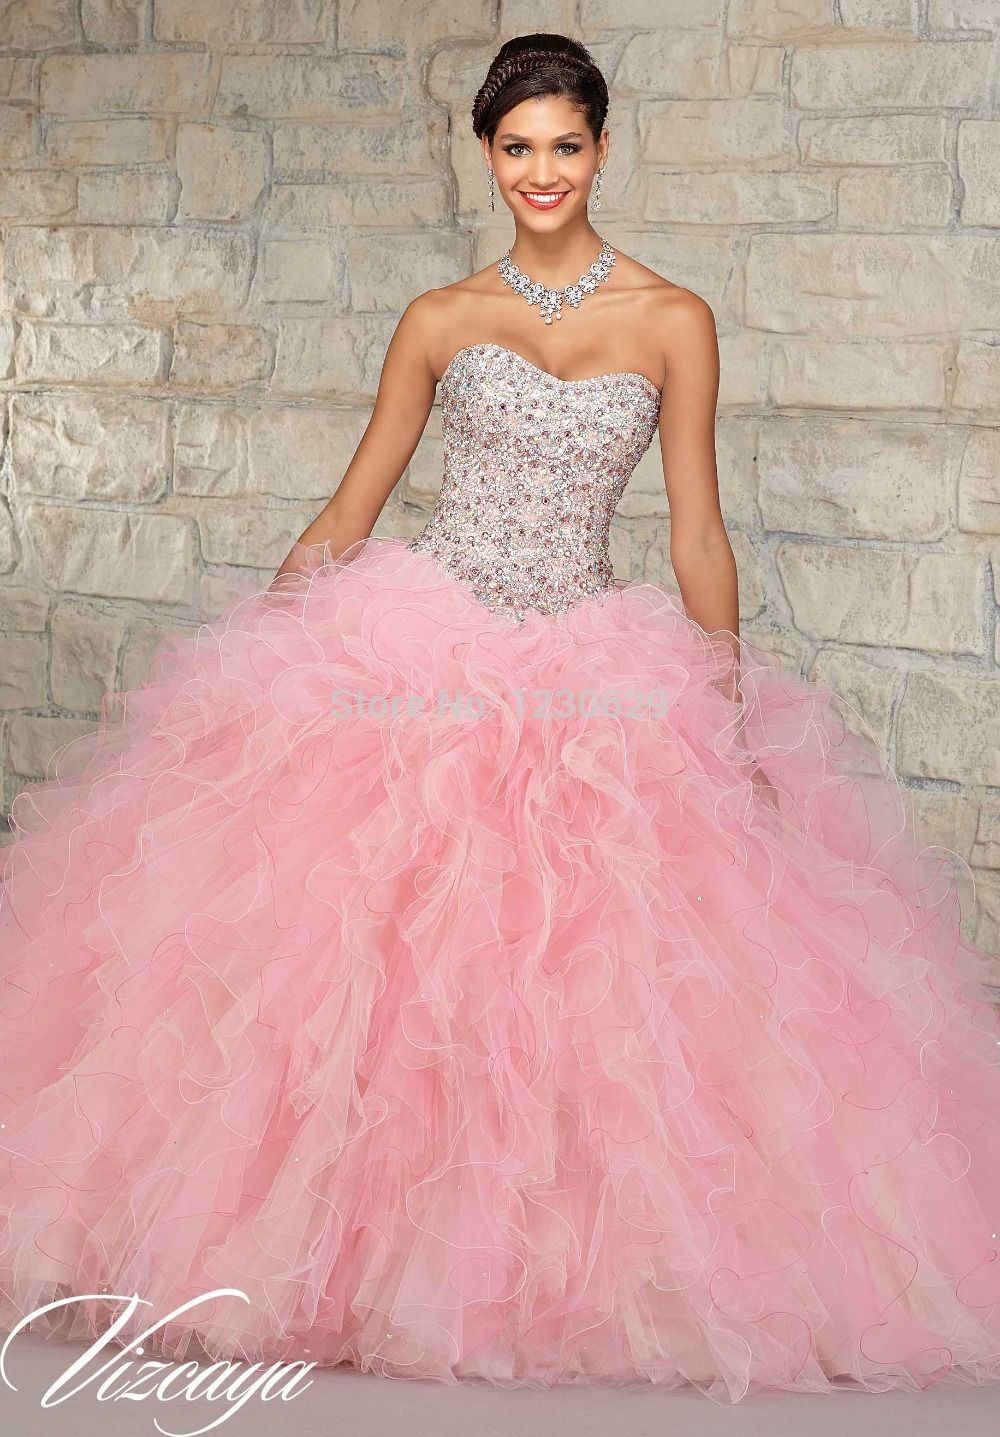 light pink quinceanera dresses - Google Search | Quinceanera ...